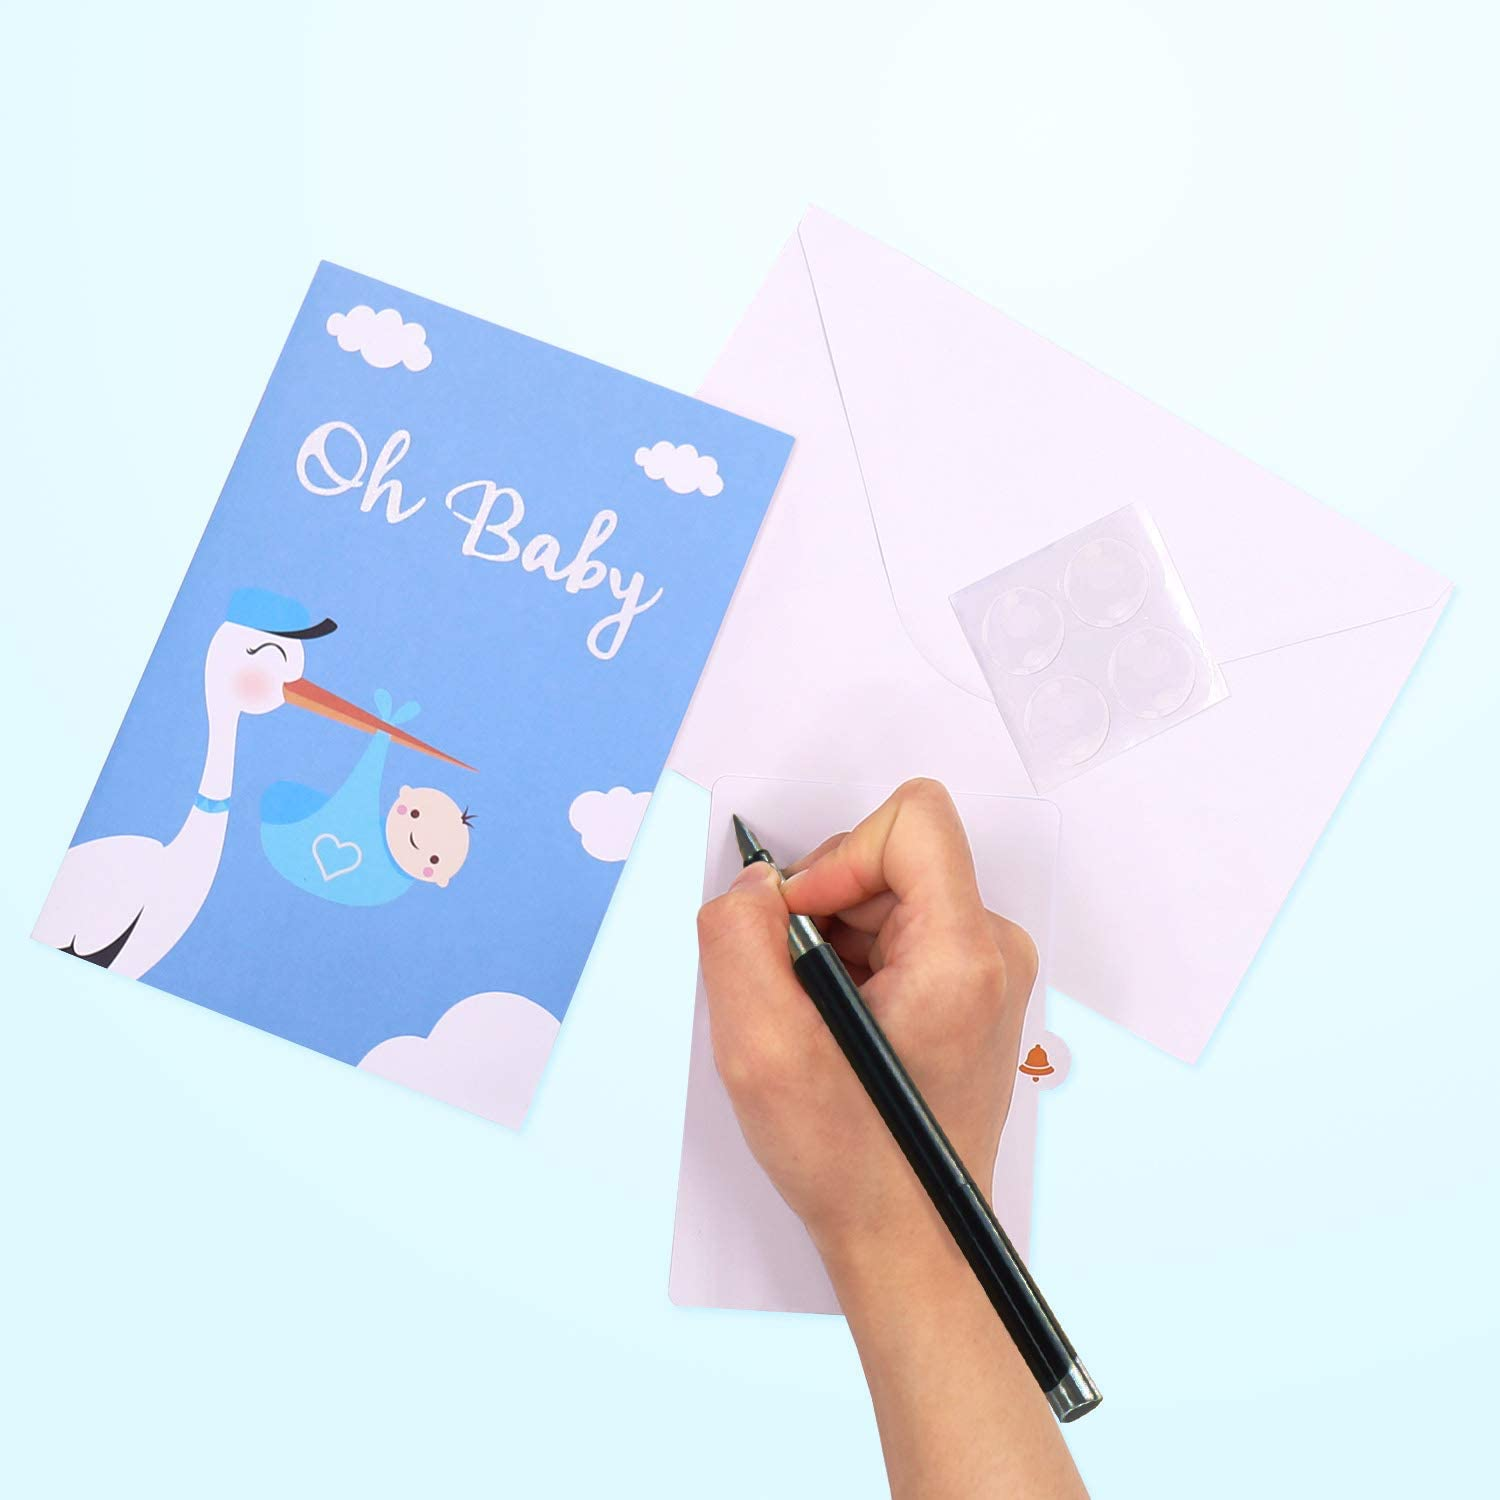 Oritouchpop Baby Shower Card, Birthday Card New Baby Card Congratulations Card Blue It's A Boy Announcement Card Stork Party Gift for Baby Boy-Boy Special Delivery